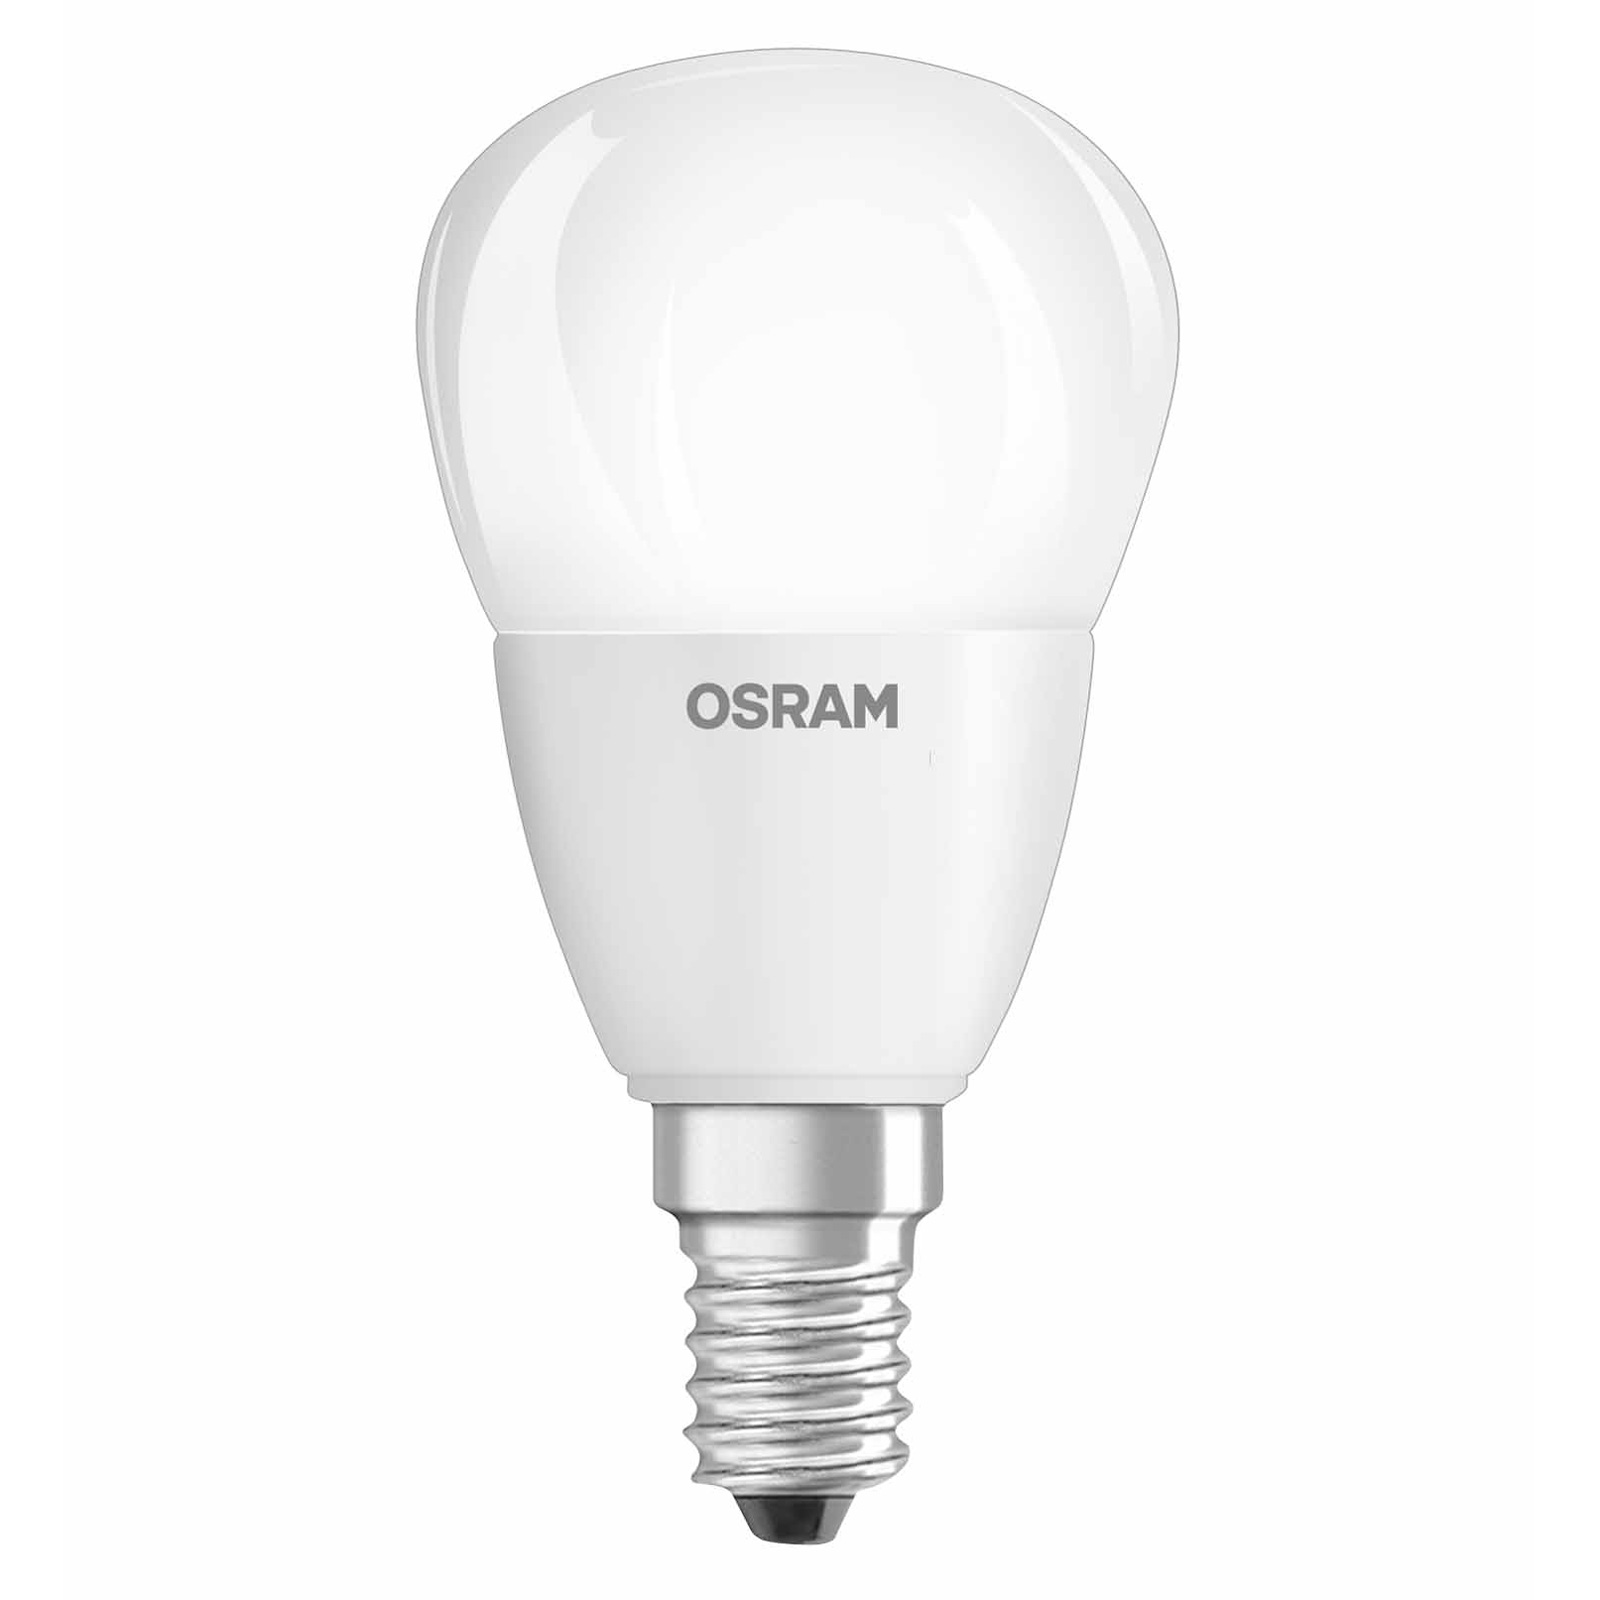 osram led superstar classic p 40 e14 wie 40 watt 470. Black Bedroom Furniture Sets. Home Design Ideas